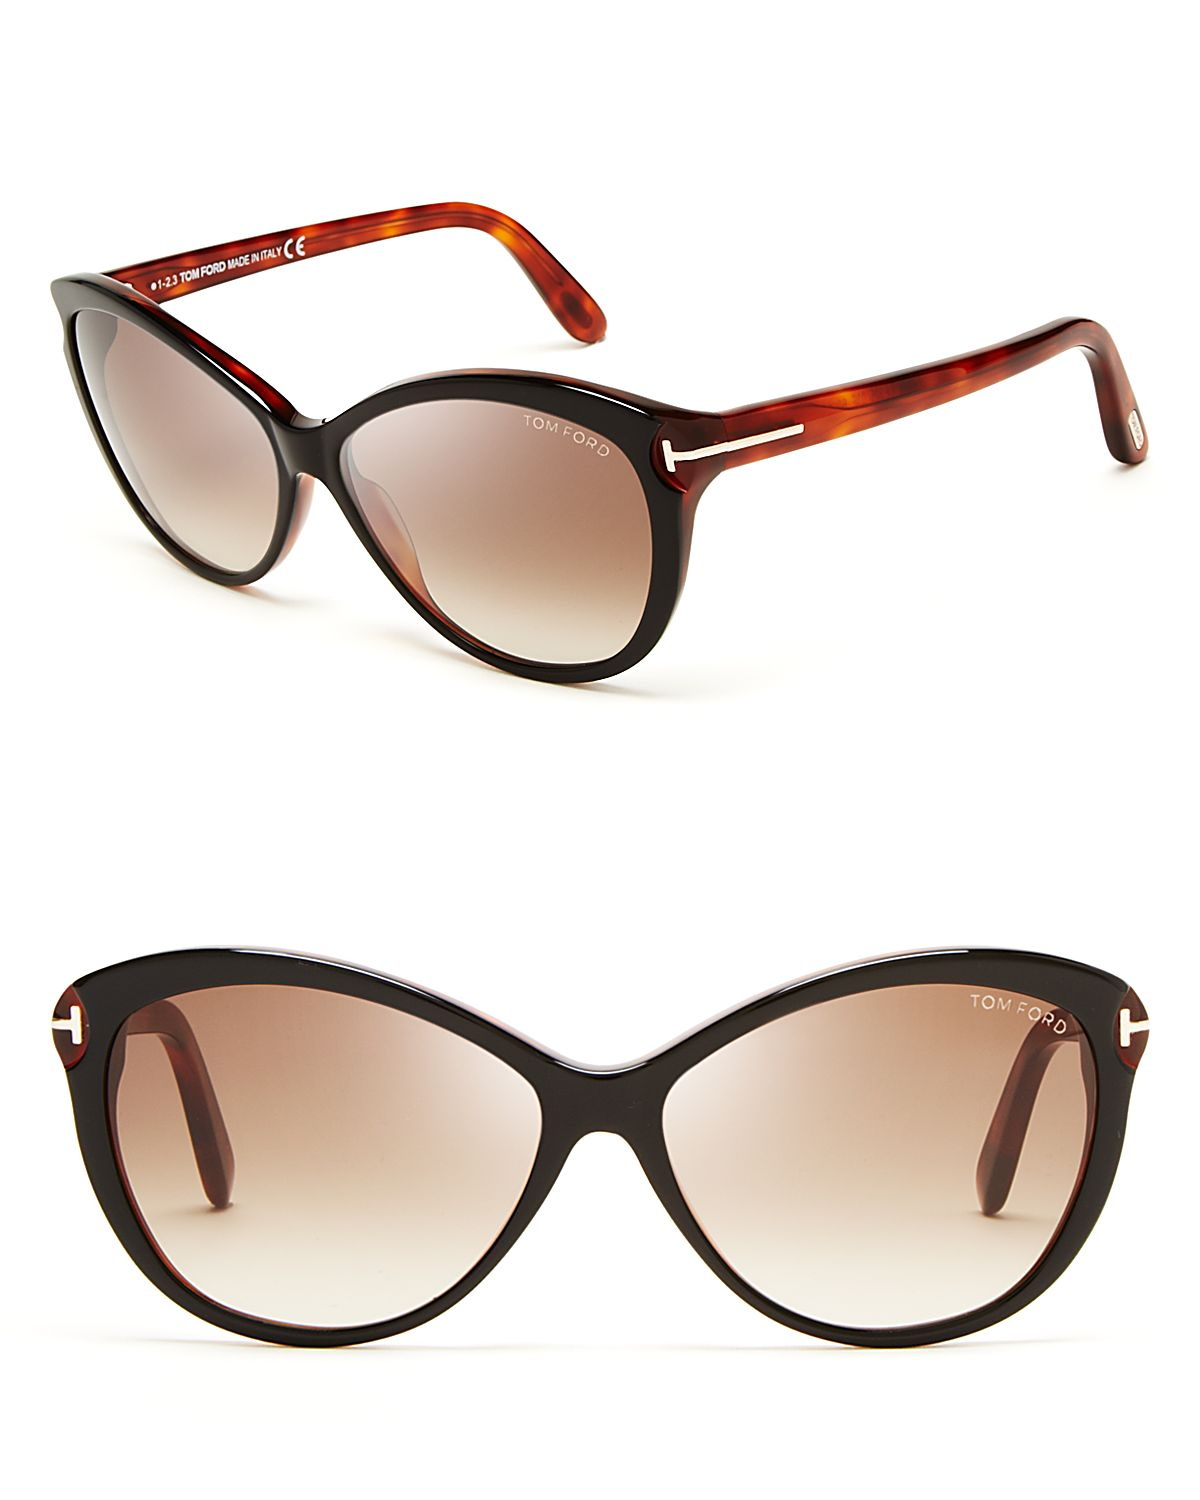 tom ford telma cat eye sunglasses in animal shiny black havana. Cars Review. Best American Auto & Cars Review